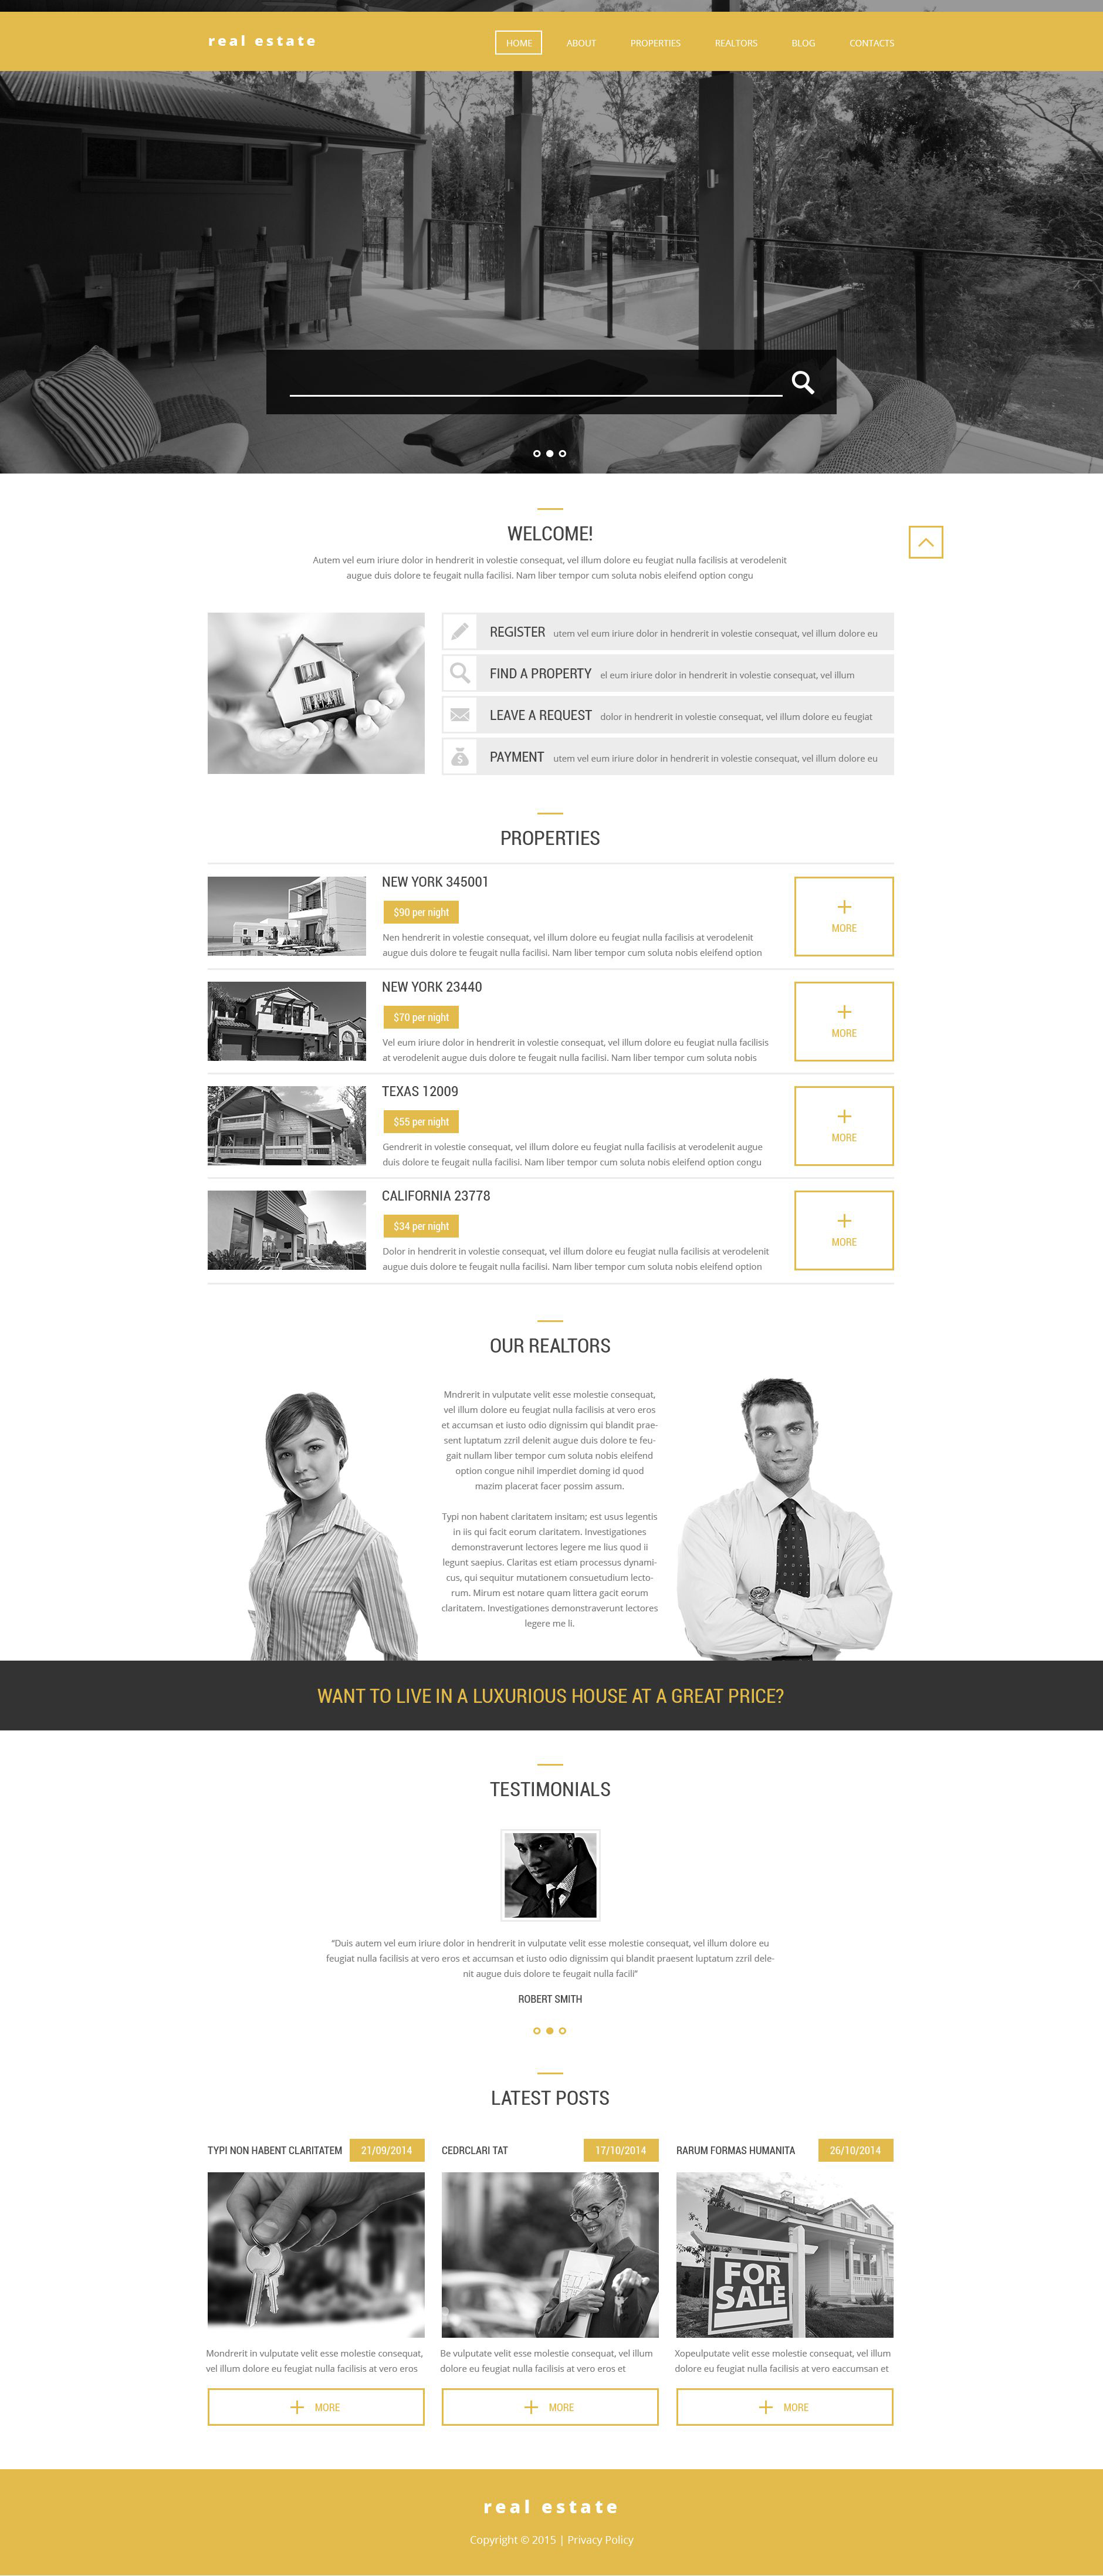 The Real Estate Agency WordPress Design 53383, one of the best WordPress themes of its kind (business, most popular), also known as real estate agency WordPress template, services WordPress template, house WordPress template, home WordPress template, apartment WordPress template, buildings WordPress template, finance WordPress template, loan WordPress template, sales WordPress template, rentals WordPress template, management WordPress template, search WordPress template, team WordPress template, money WordPress template, foreclosure WordPress template, estimator WordPress template, investment WordPress template, development WordPress template, constructions WordPress template, architecture WordPress template, engineering WordPress template, apartment WordPress template, sale WordPress template, rent WordPress template, arch and related with real estate agency, services, house, home, apartment, buildings, finance, loan, sales, rentals, management, search, team, money, foreclosure, estimator, investment, development, constructions, architecture, engineering, apartment, sale, rent, arch, etc.